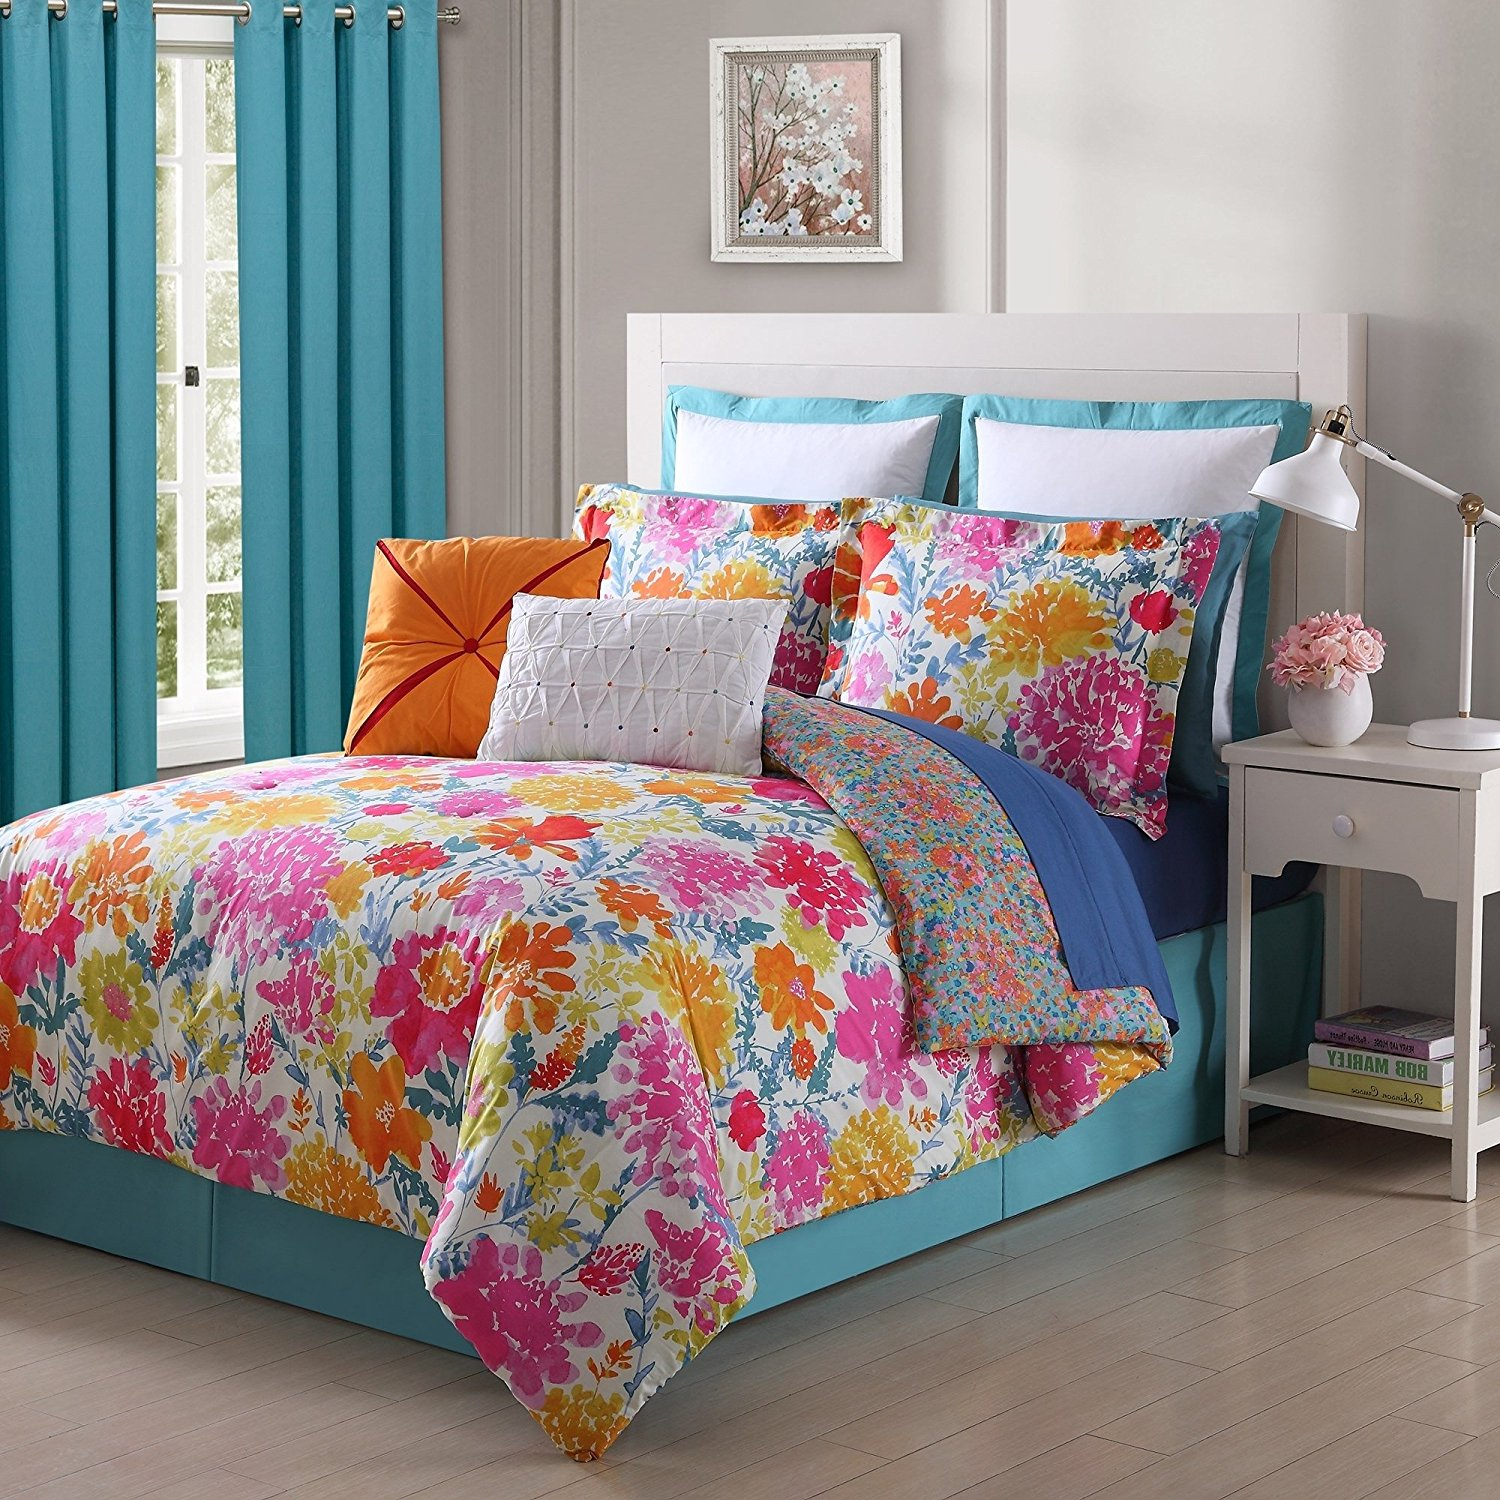 Get Quotations 4 Piece Fl Comforter Set Full Allover Adorable Garden Flower Pattern Casual Solid